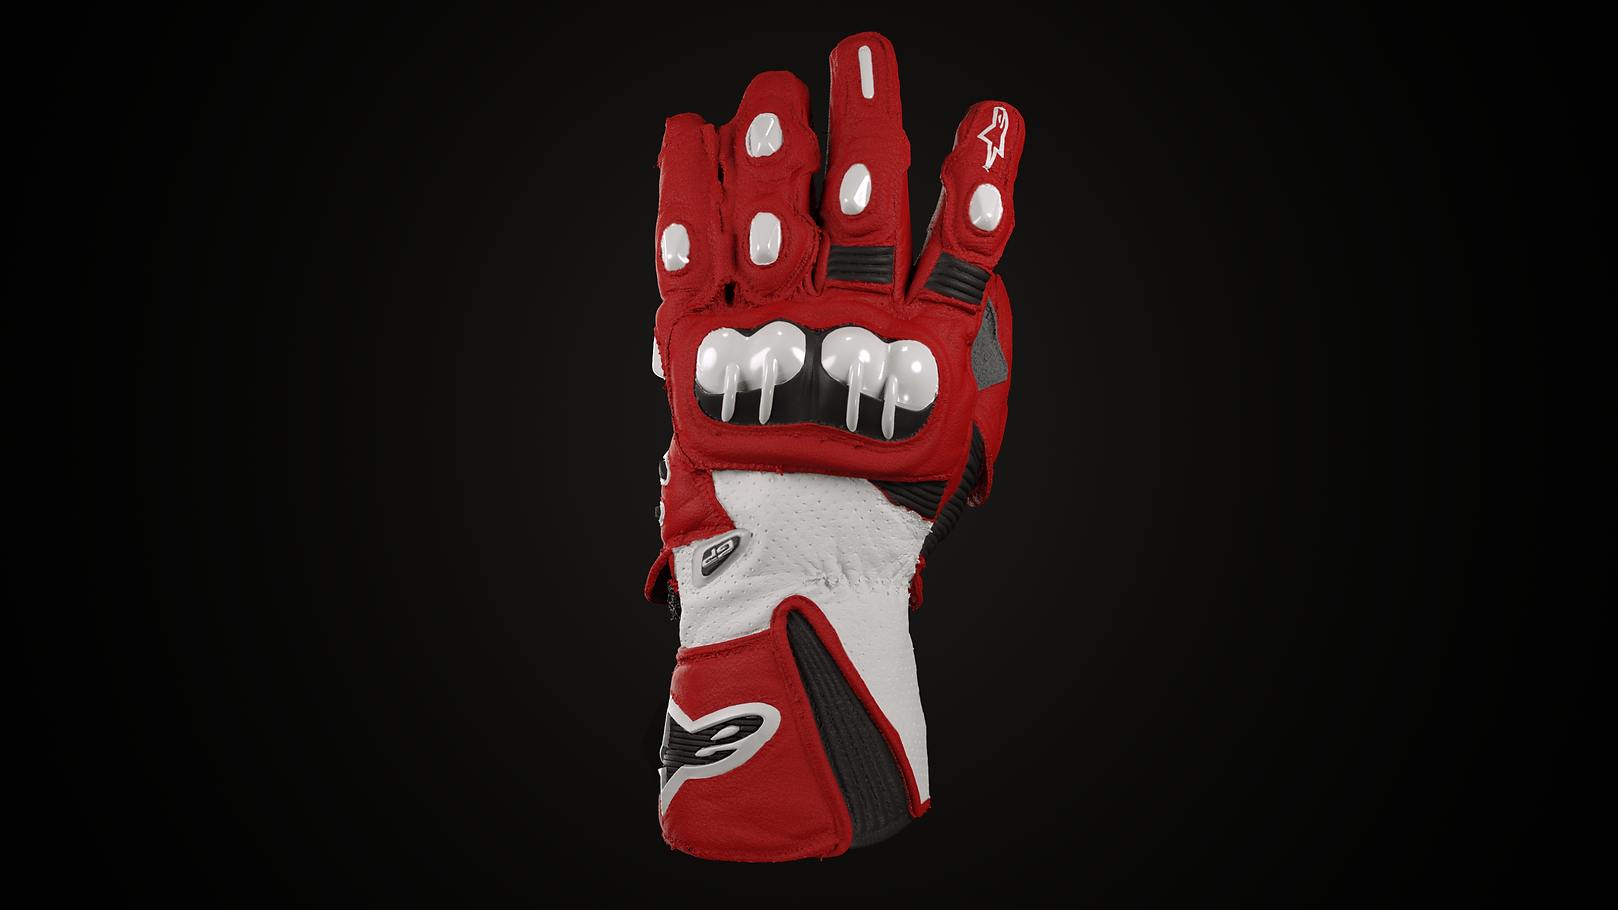 Alpinestars_Design_At_Sketch_22.png